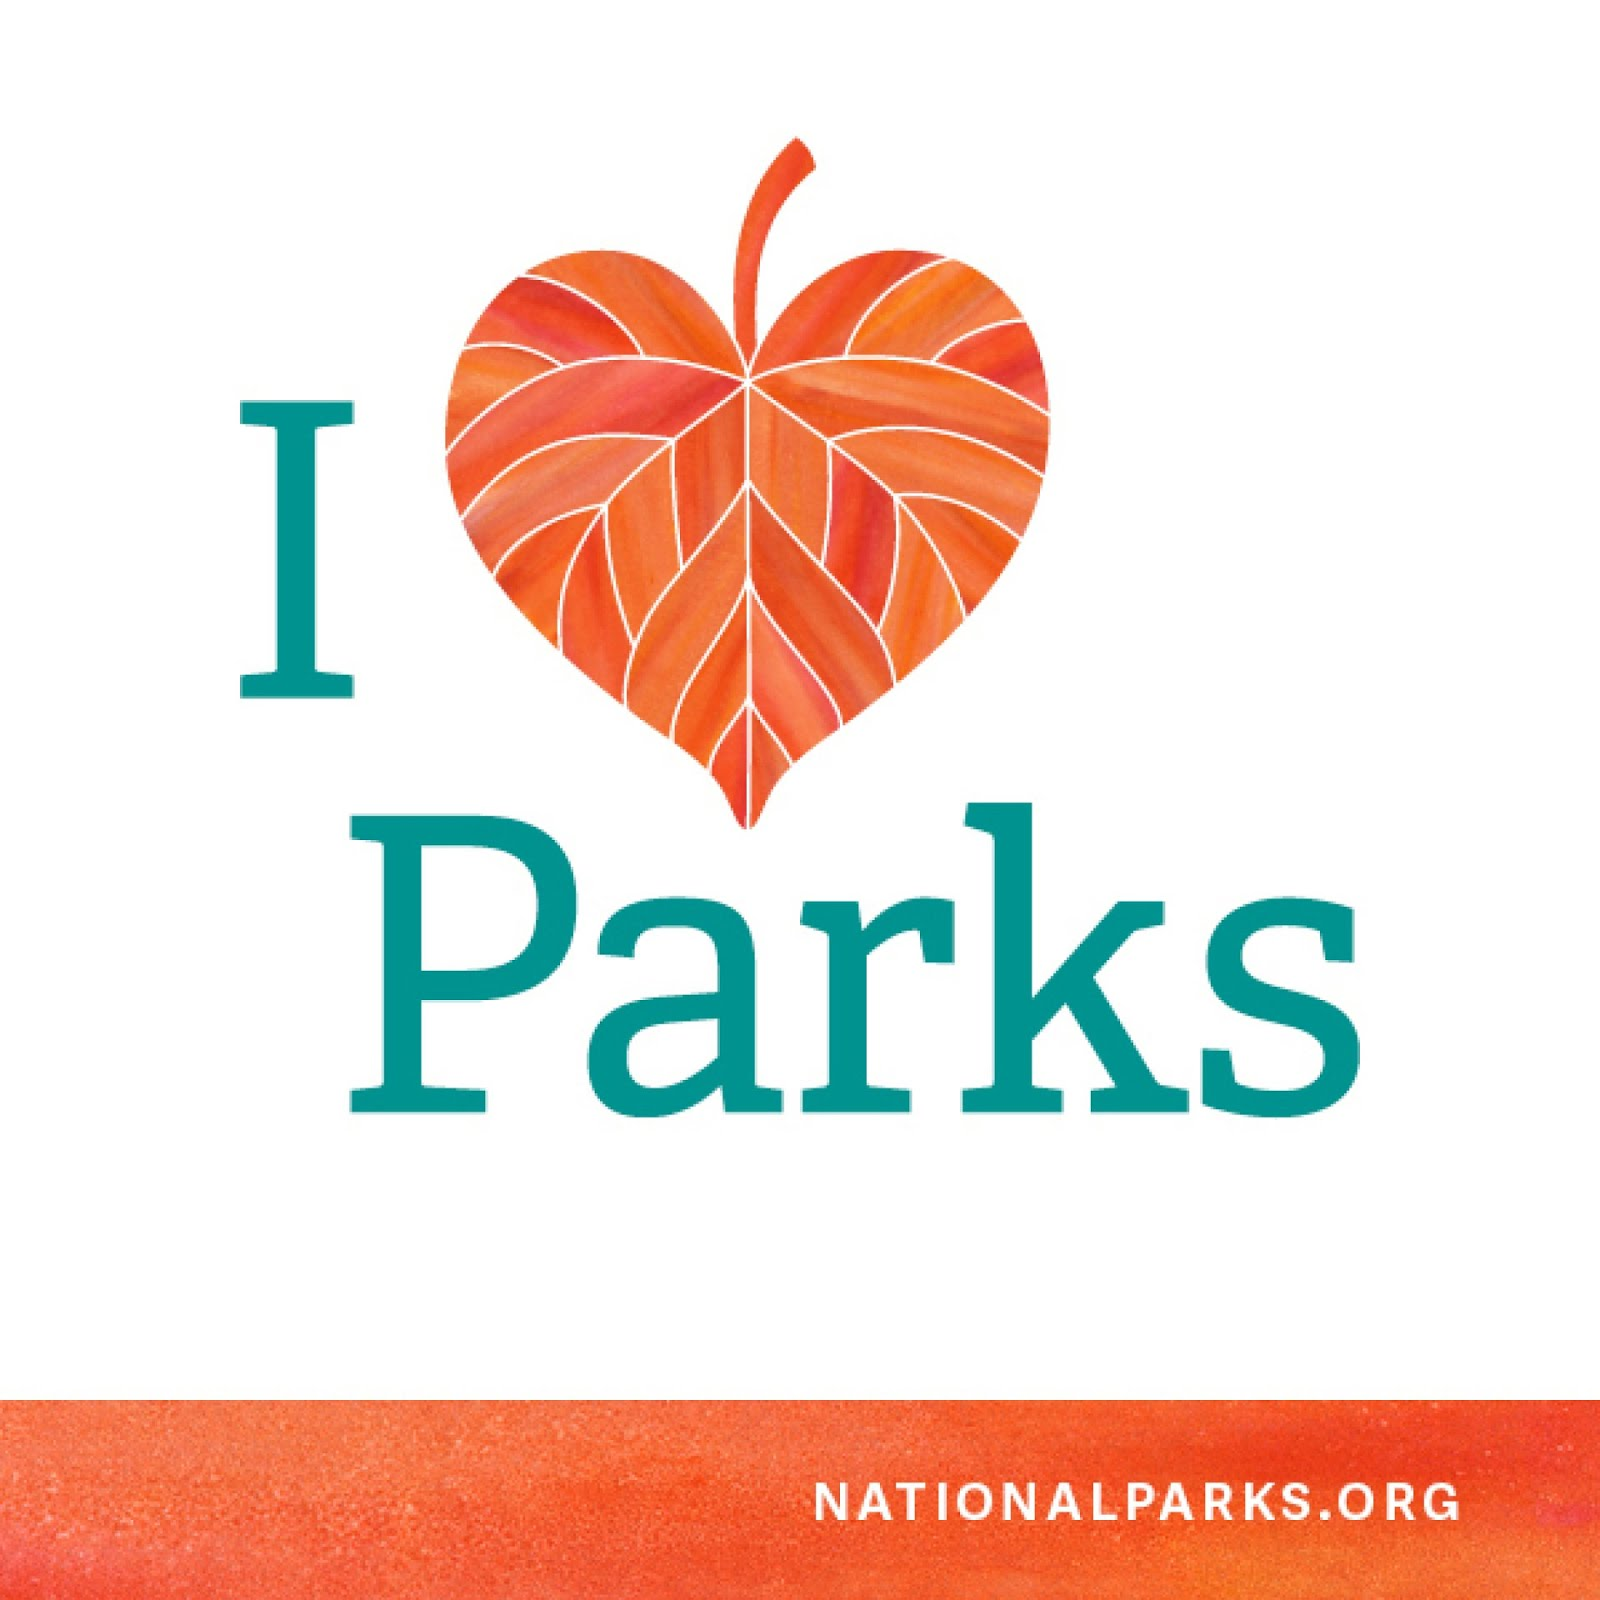 Check out National Parks